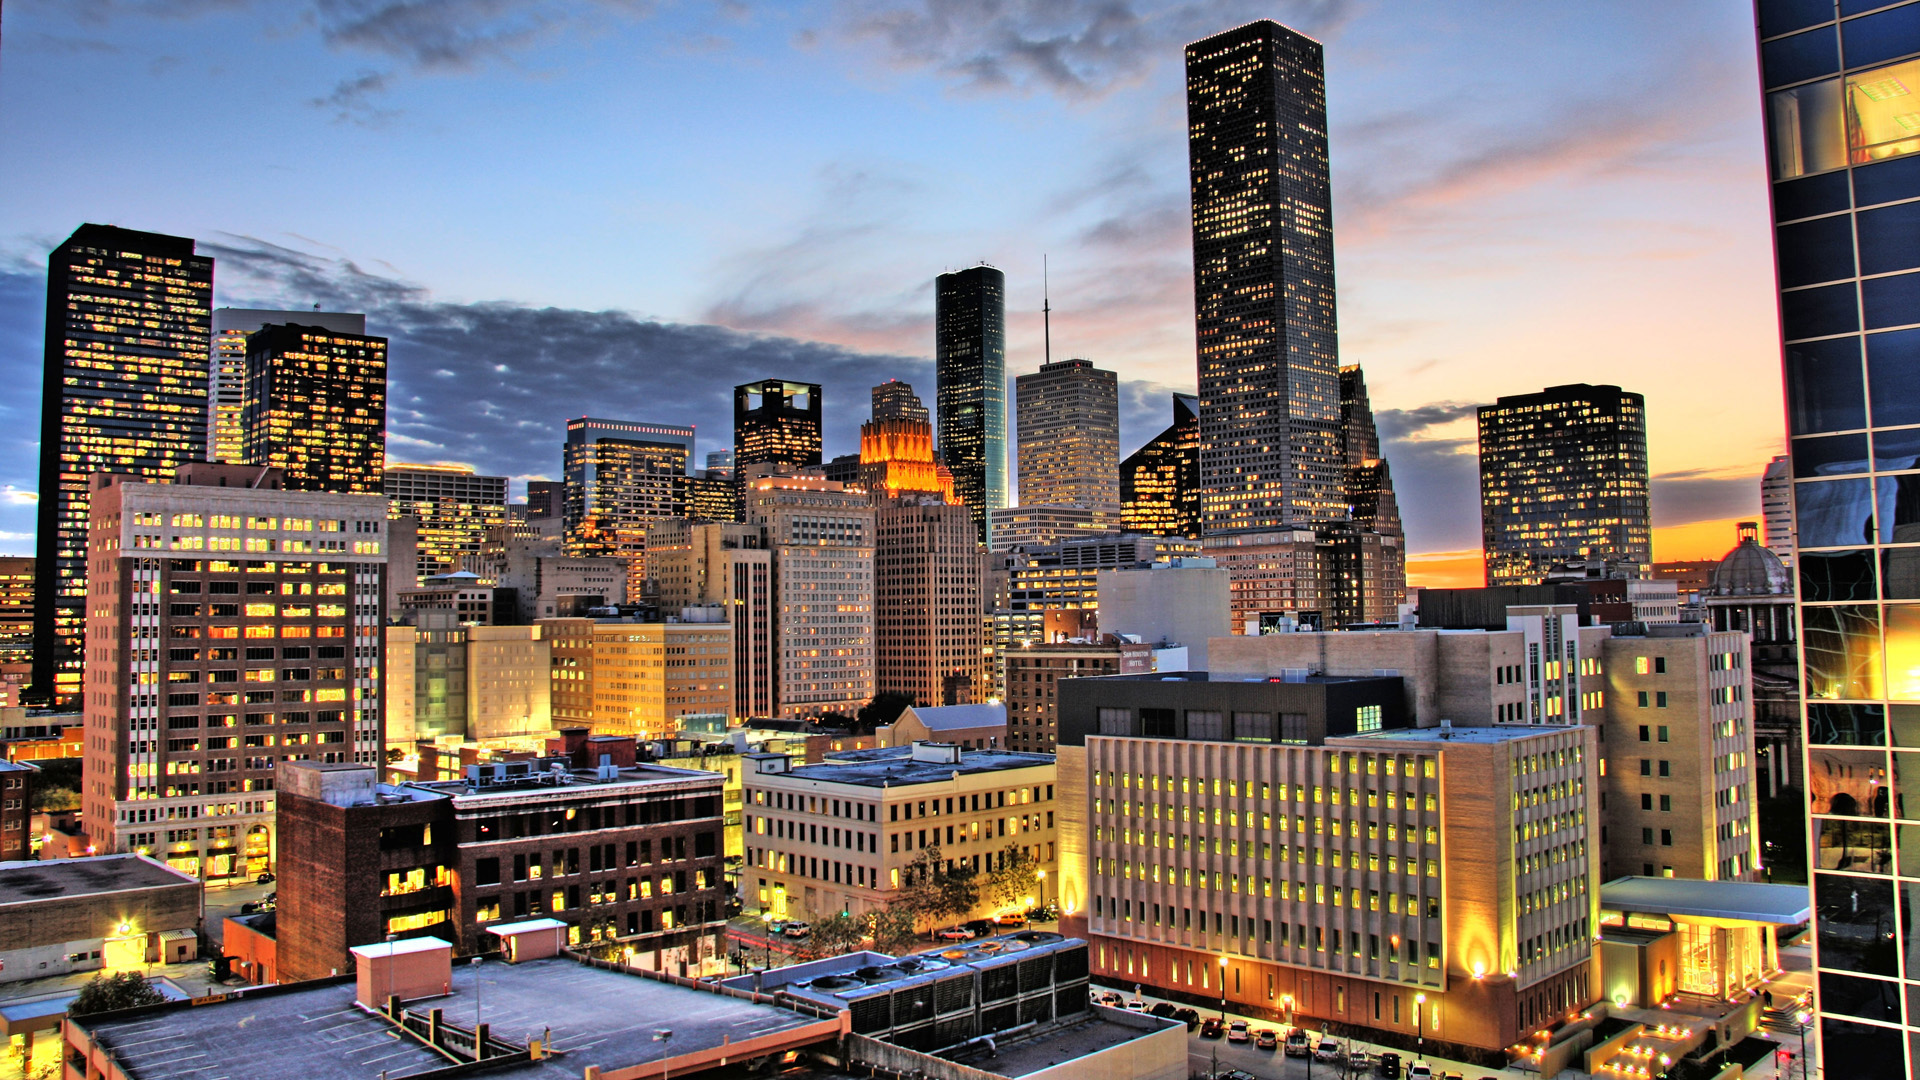 Houston wallpaper Wallpaper Wide HD 1920x1080